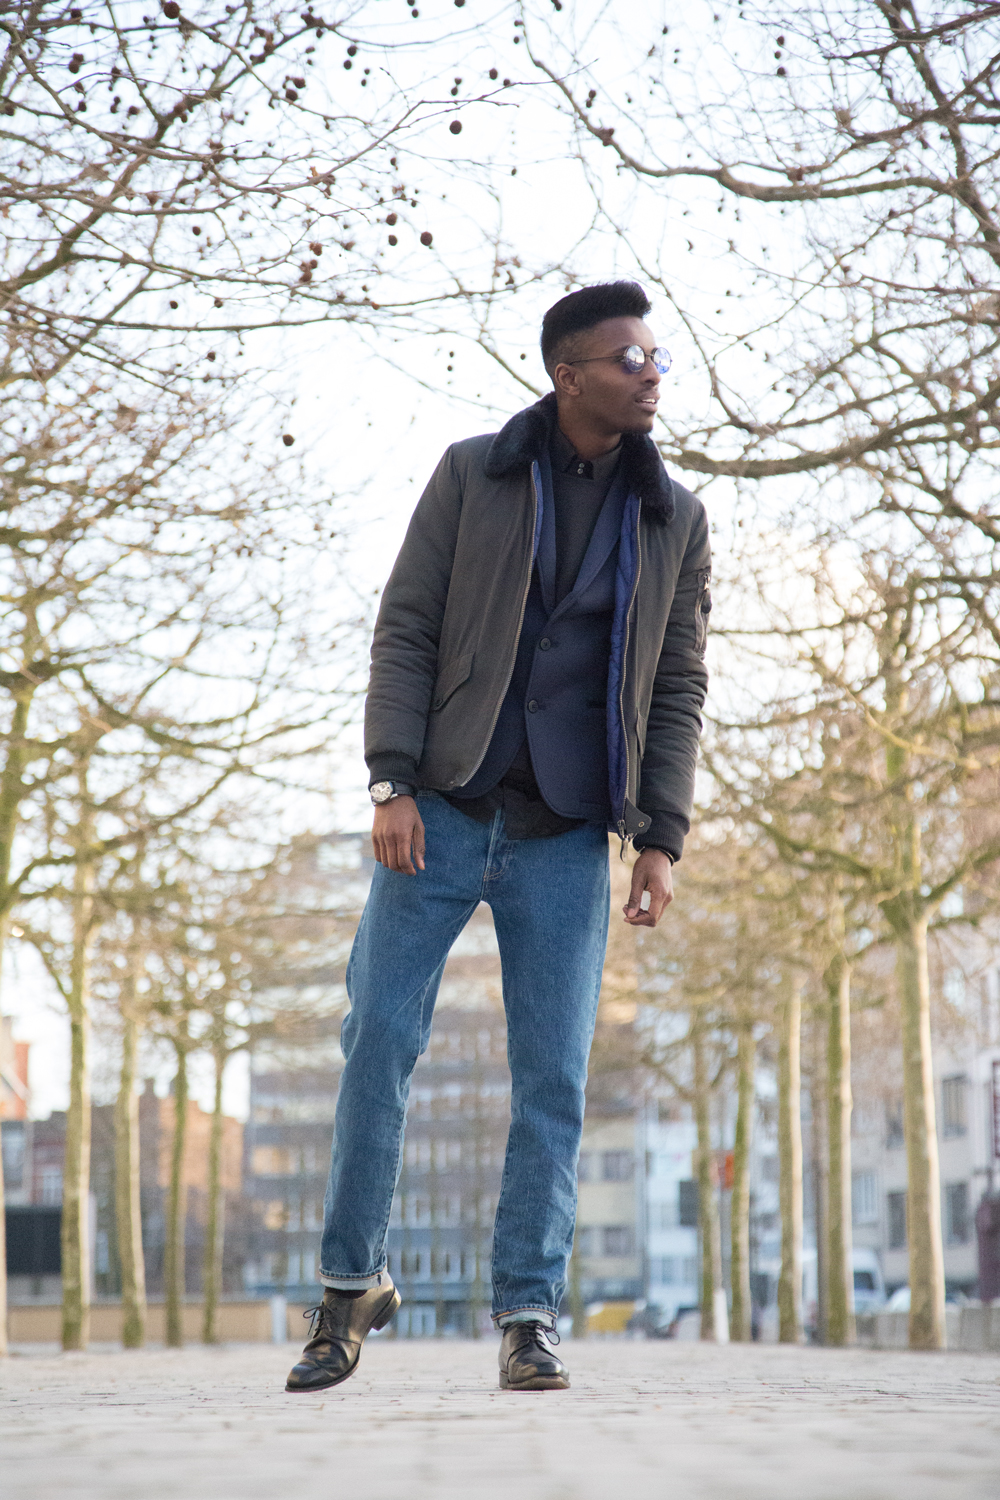 JON THE GOLD | ICONIC 501 | Levi's 501ct customized and tapered - Jonathan is wearing native youth jacket , WE FASHION neoprene blazer, SECTION STORE sweater, MEXX shirt, 501 ct levis jeans , lord eston dress shoes - Jonathan Zegbe Menswear blogger and founder of JON THE GOLD BLOG